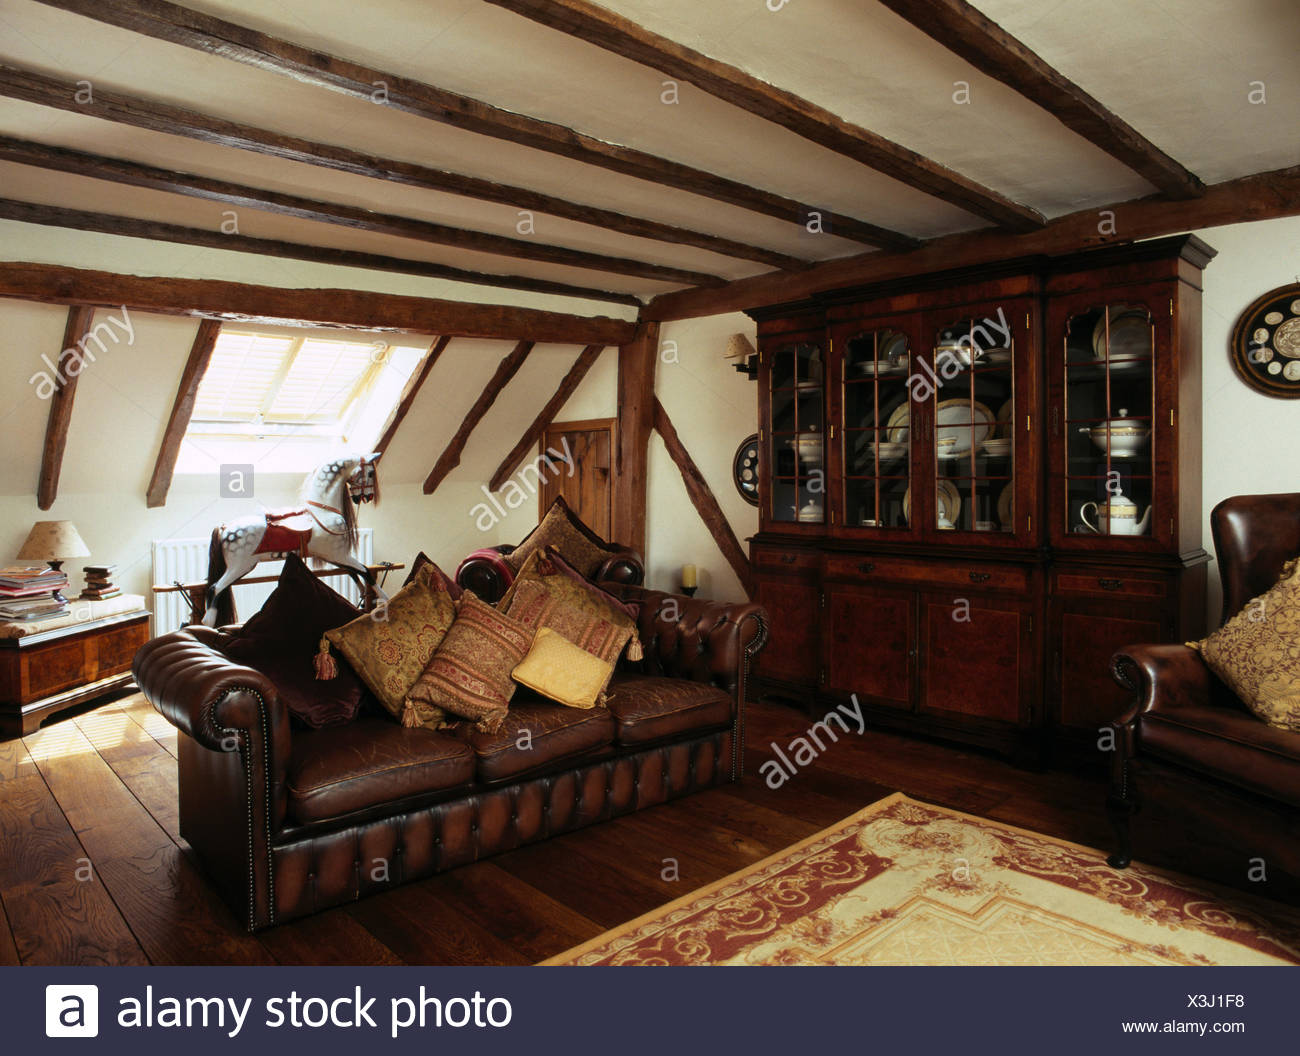 Leather sofa piled with cushions in attic living room with ...